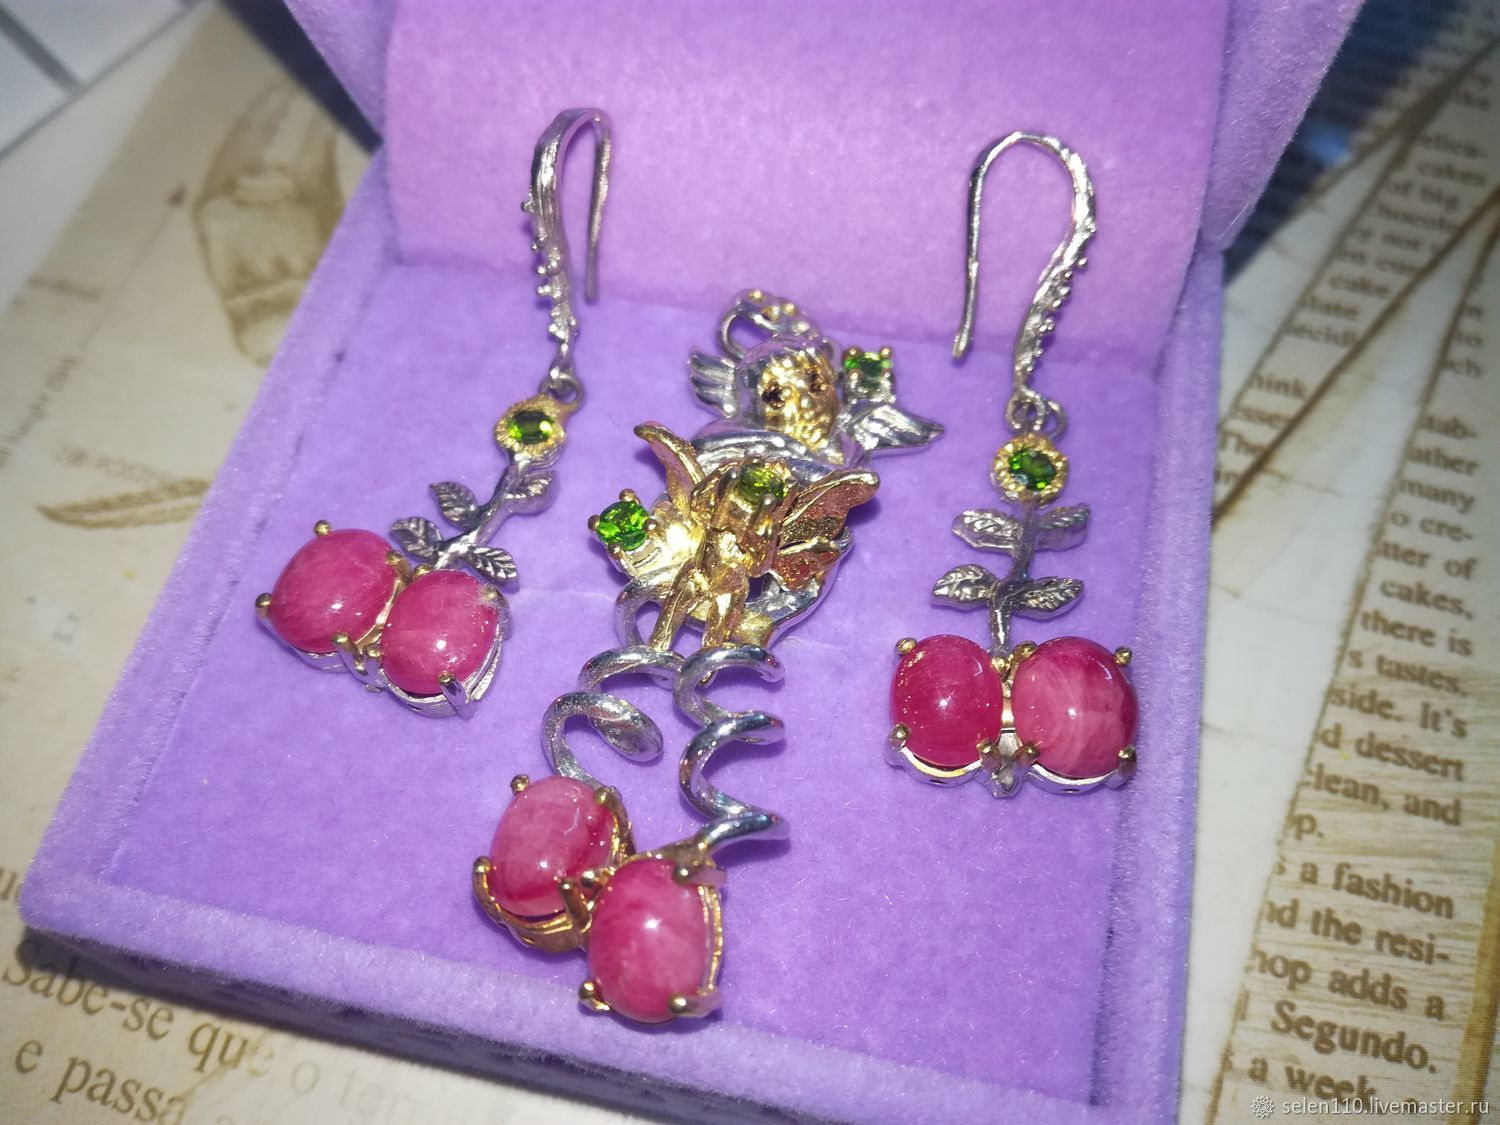 Set 'Cherries' with pink rubies and chrome diopsides, Jewelry Sets, Voronezh,  Фото №1